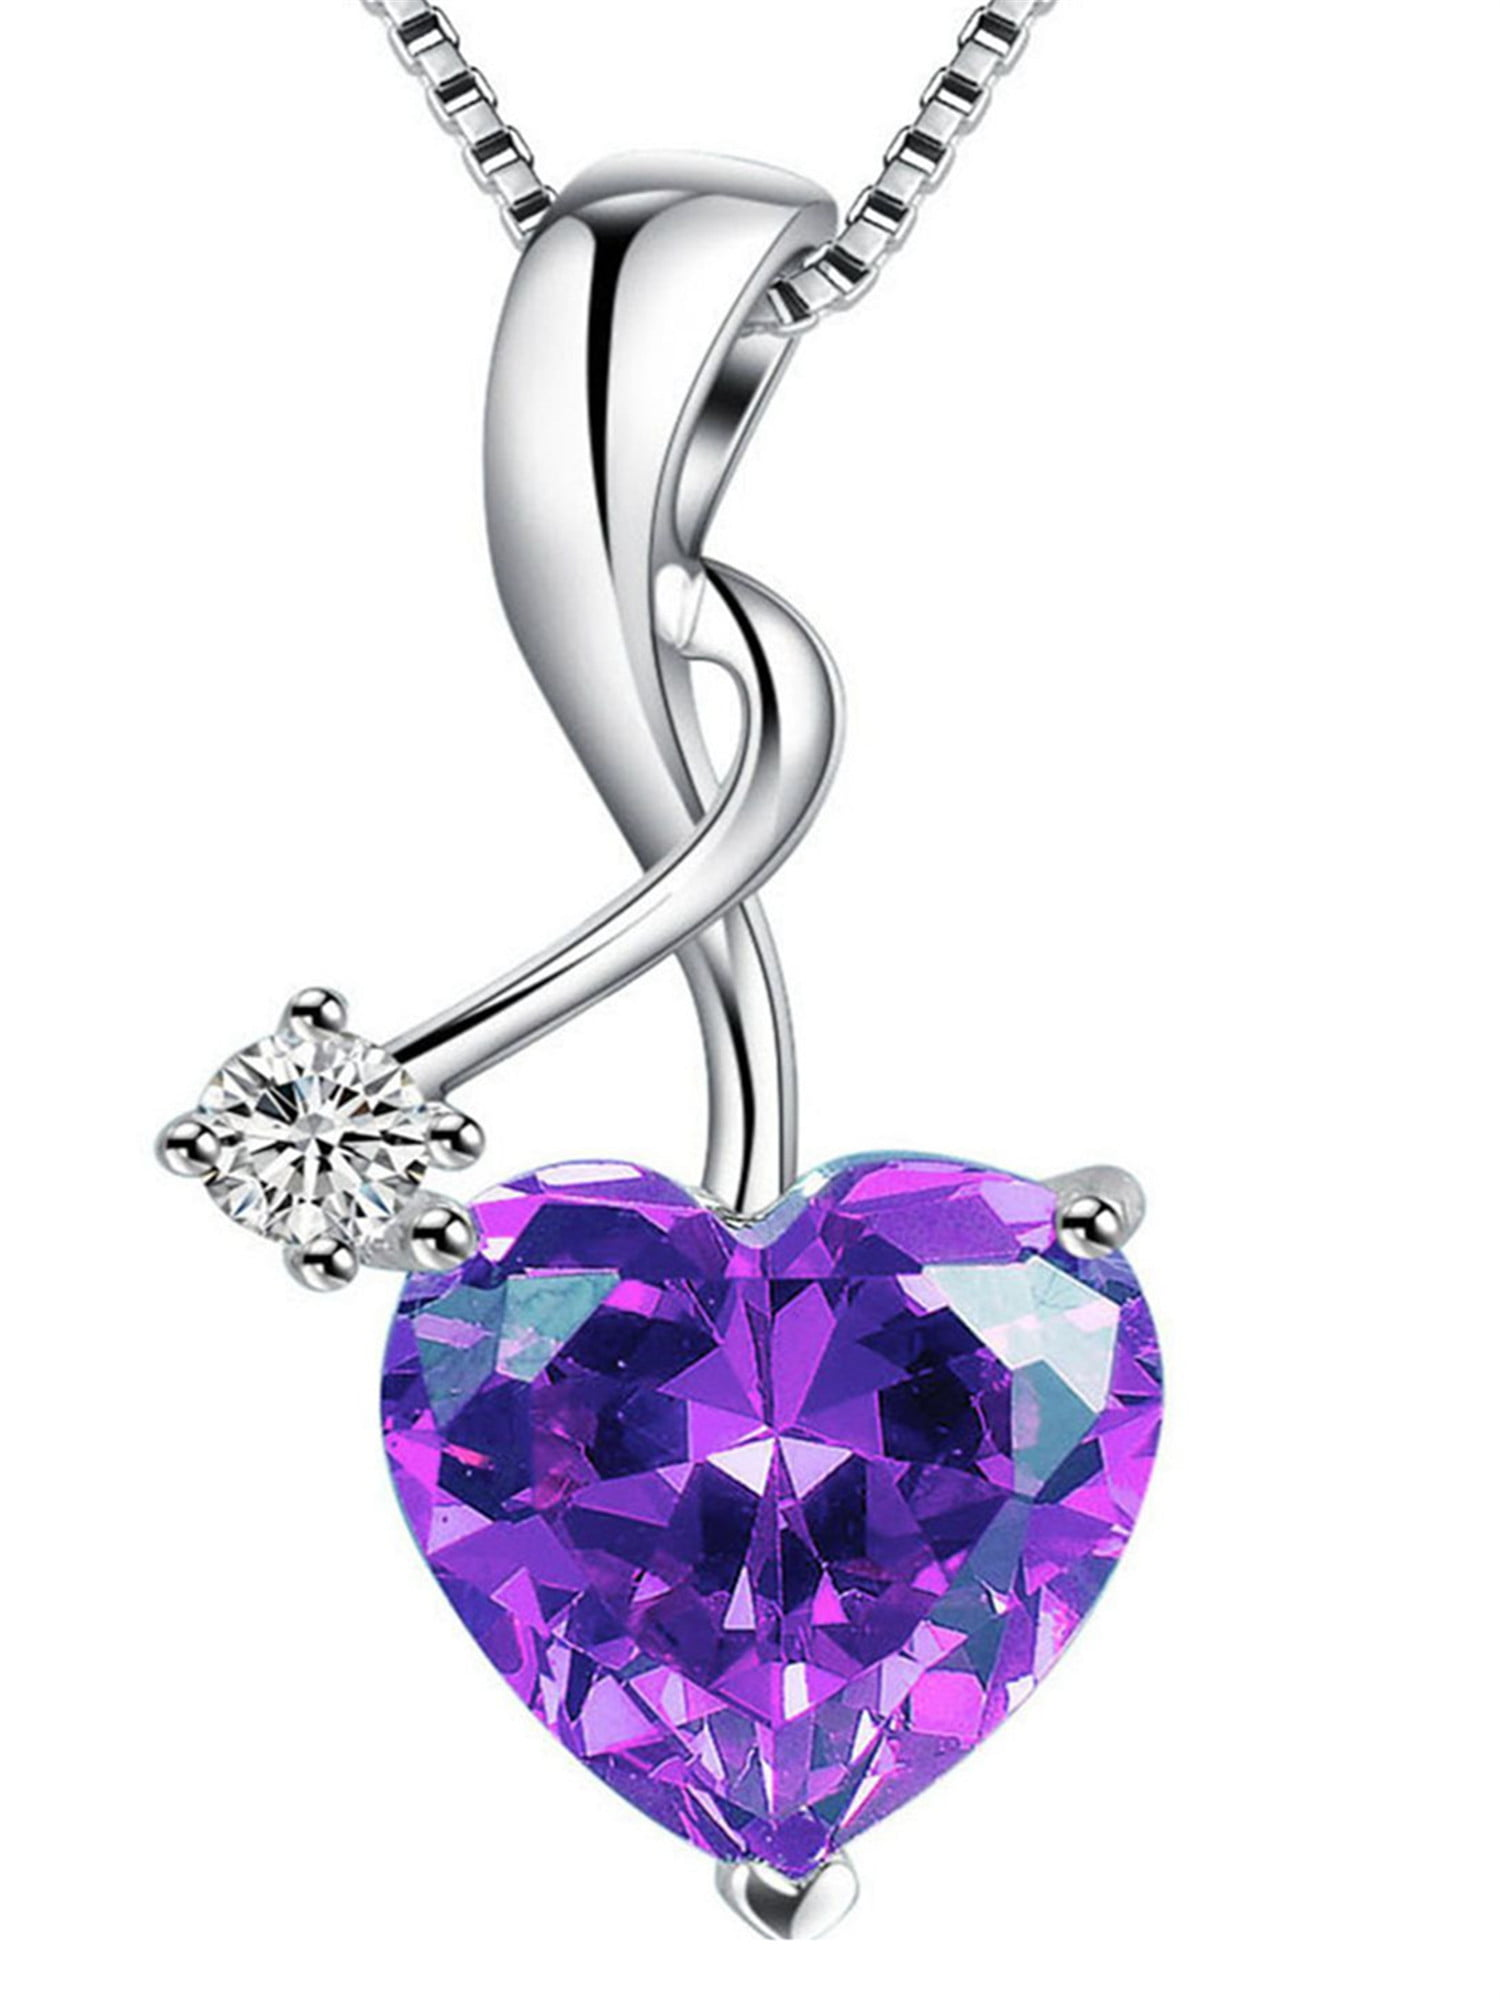 Wishrocks Simulated Amethyst /& Diamond Accent Infinity Heart MOM Pendant in Sterling Silver